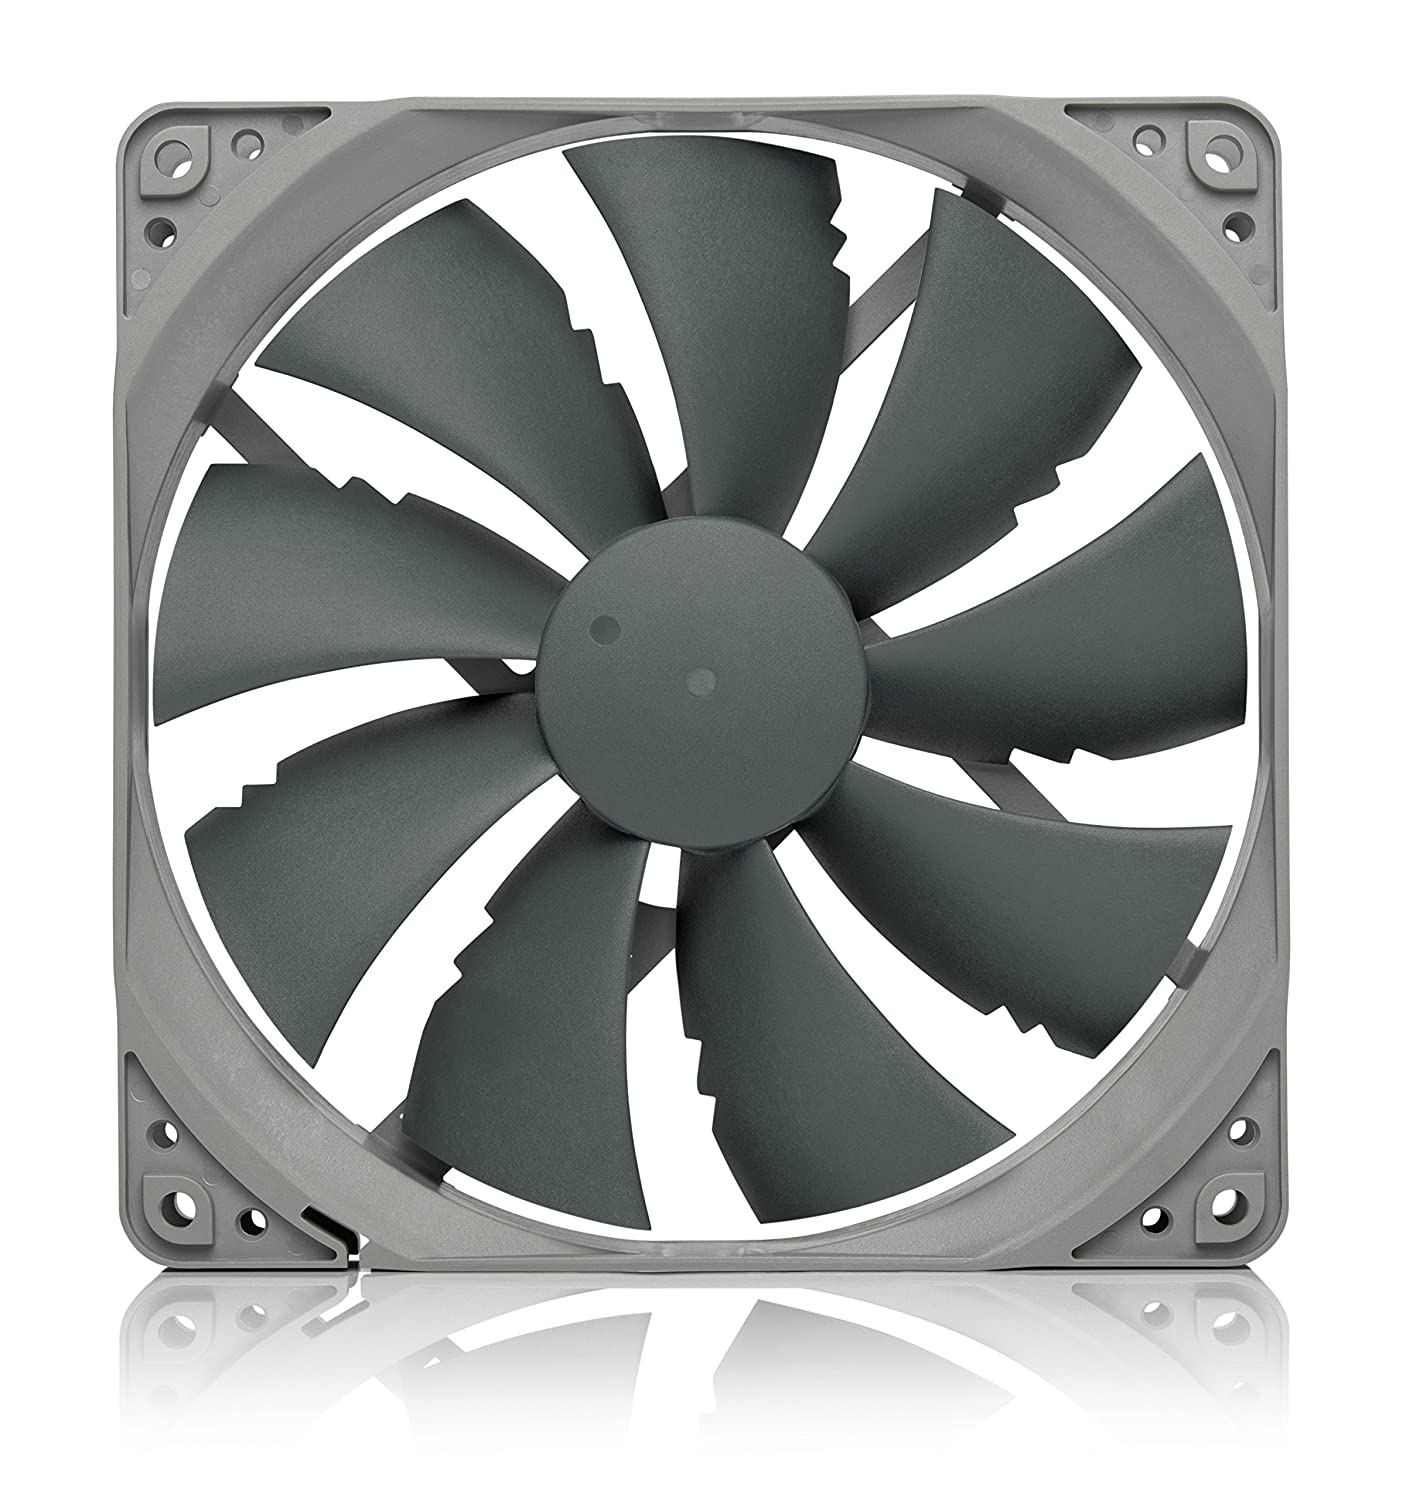 Noctua NF-P14s redux-1500 PWM, High Performance Cooling Fan, 4-Pin, 1500 RPM (140mm, Grey)